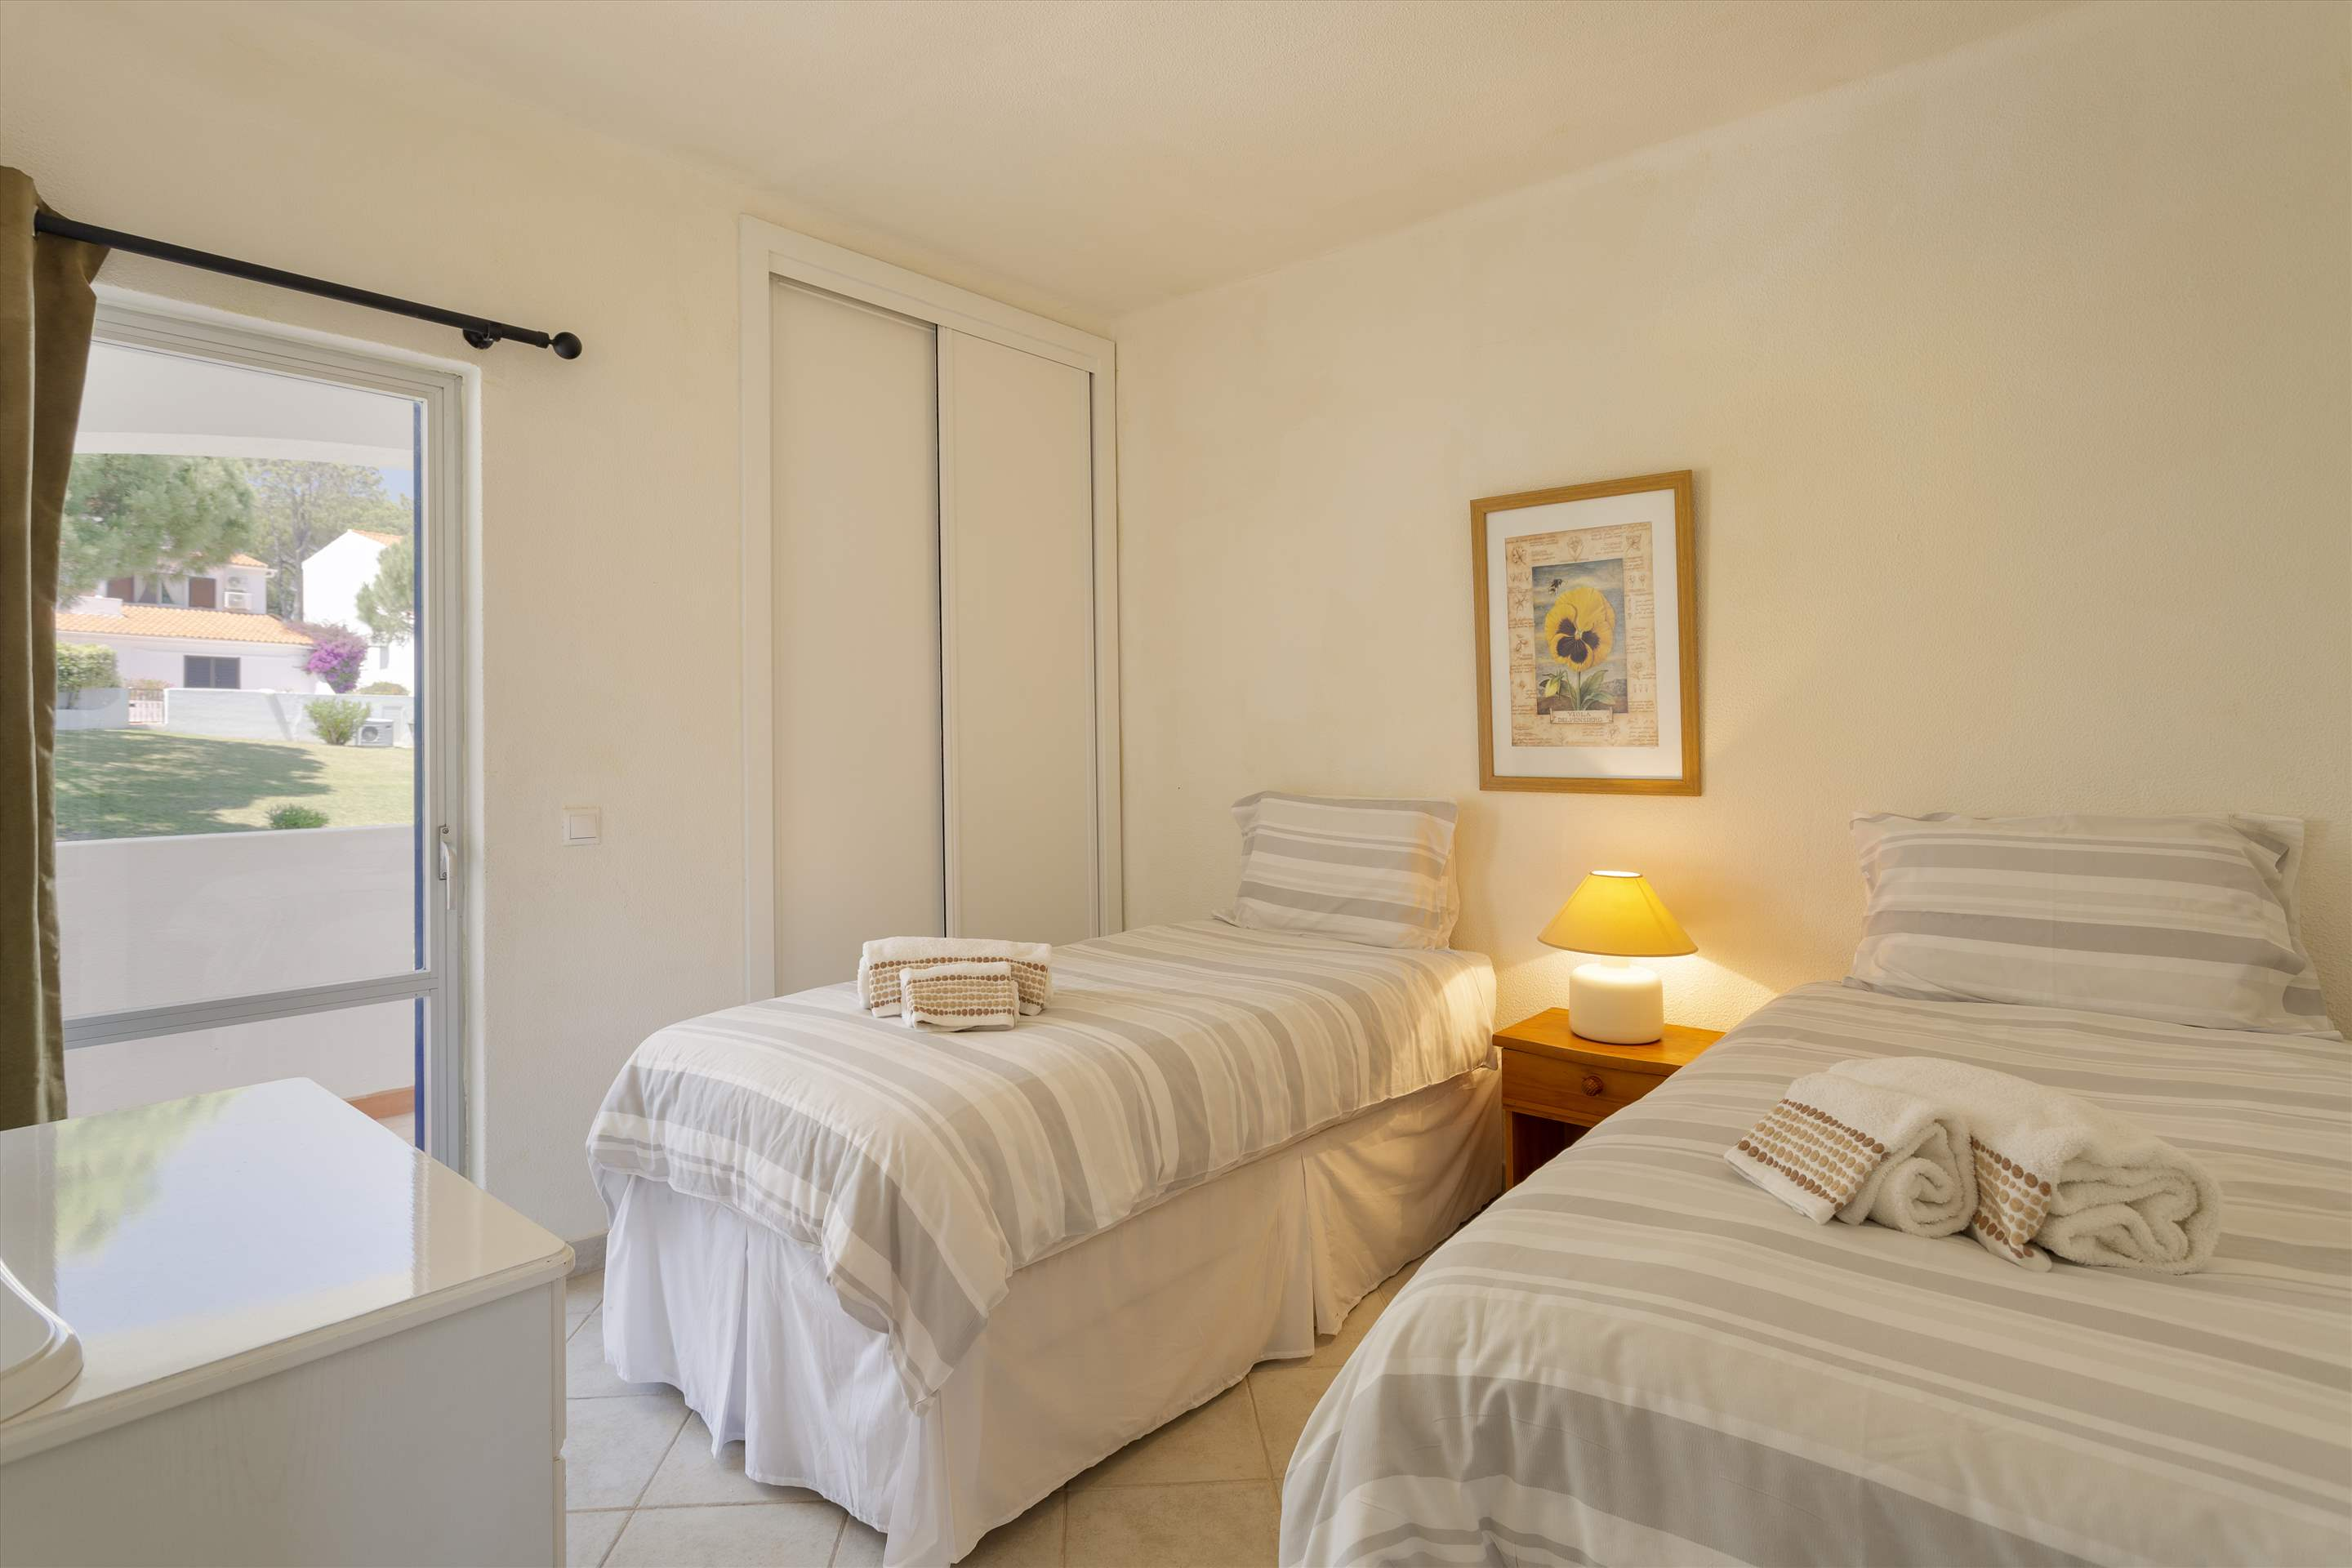 Villa Flamingo, 3 bedroom villa in Vale do Lobo, Algarve Photo #12